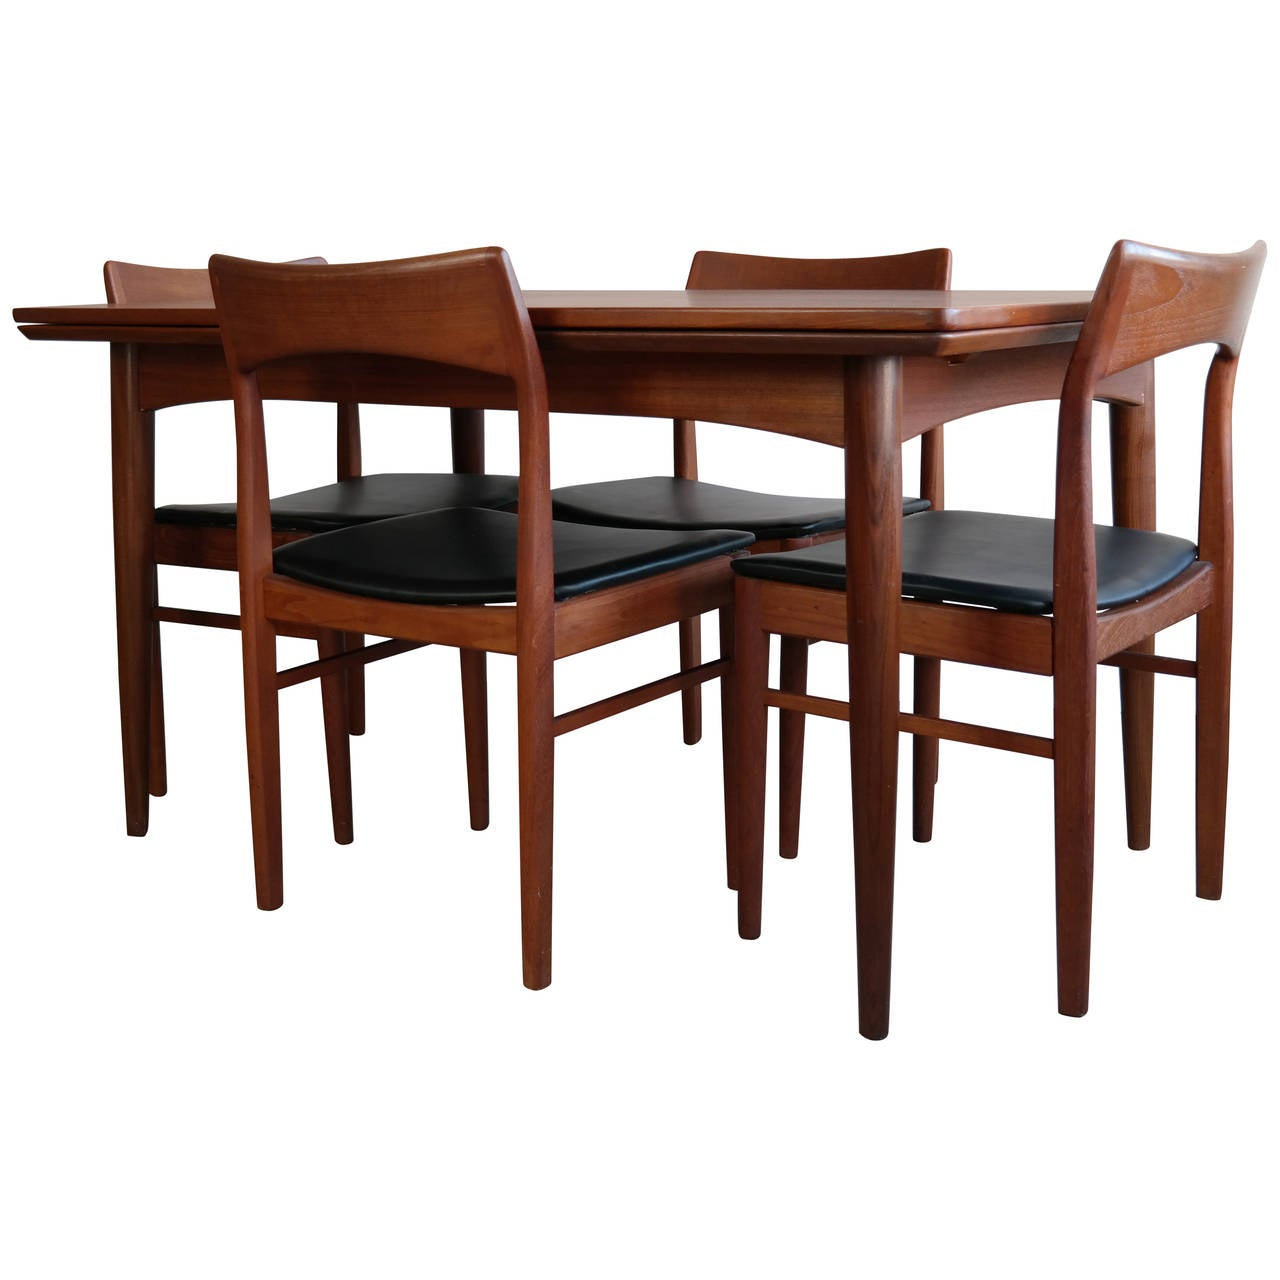 Danish modern dining set in teak at 1stdibs for Stylish dining table set